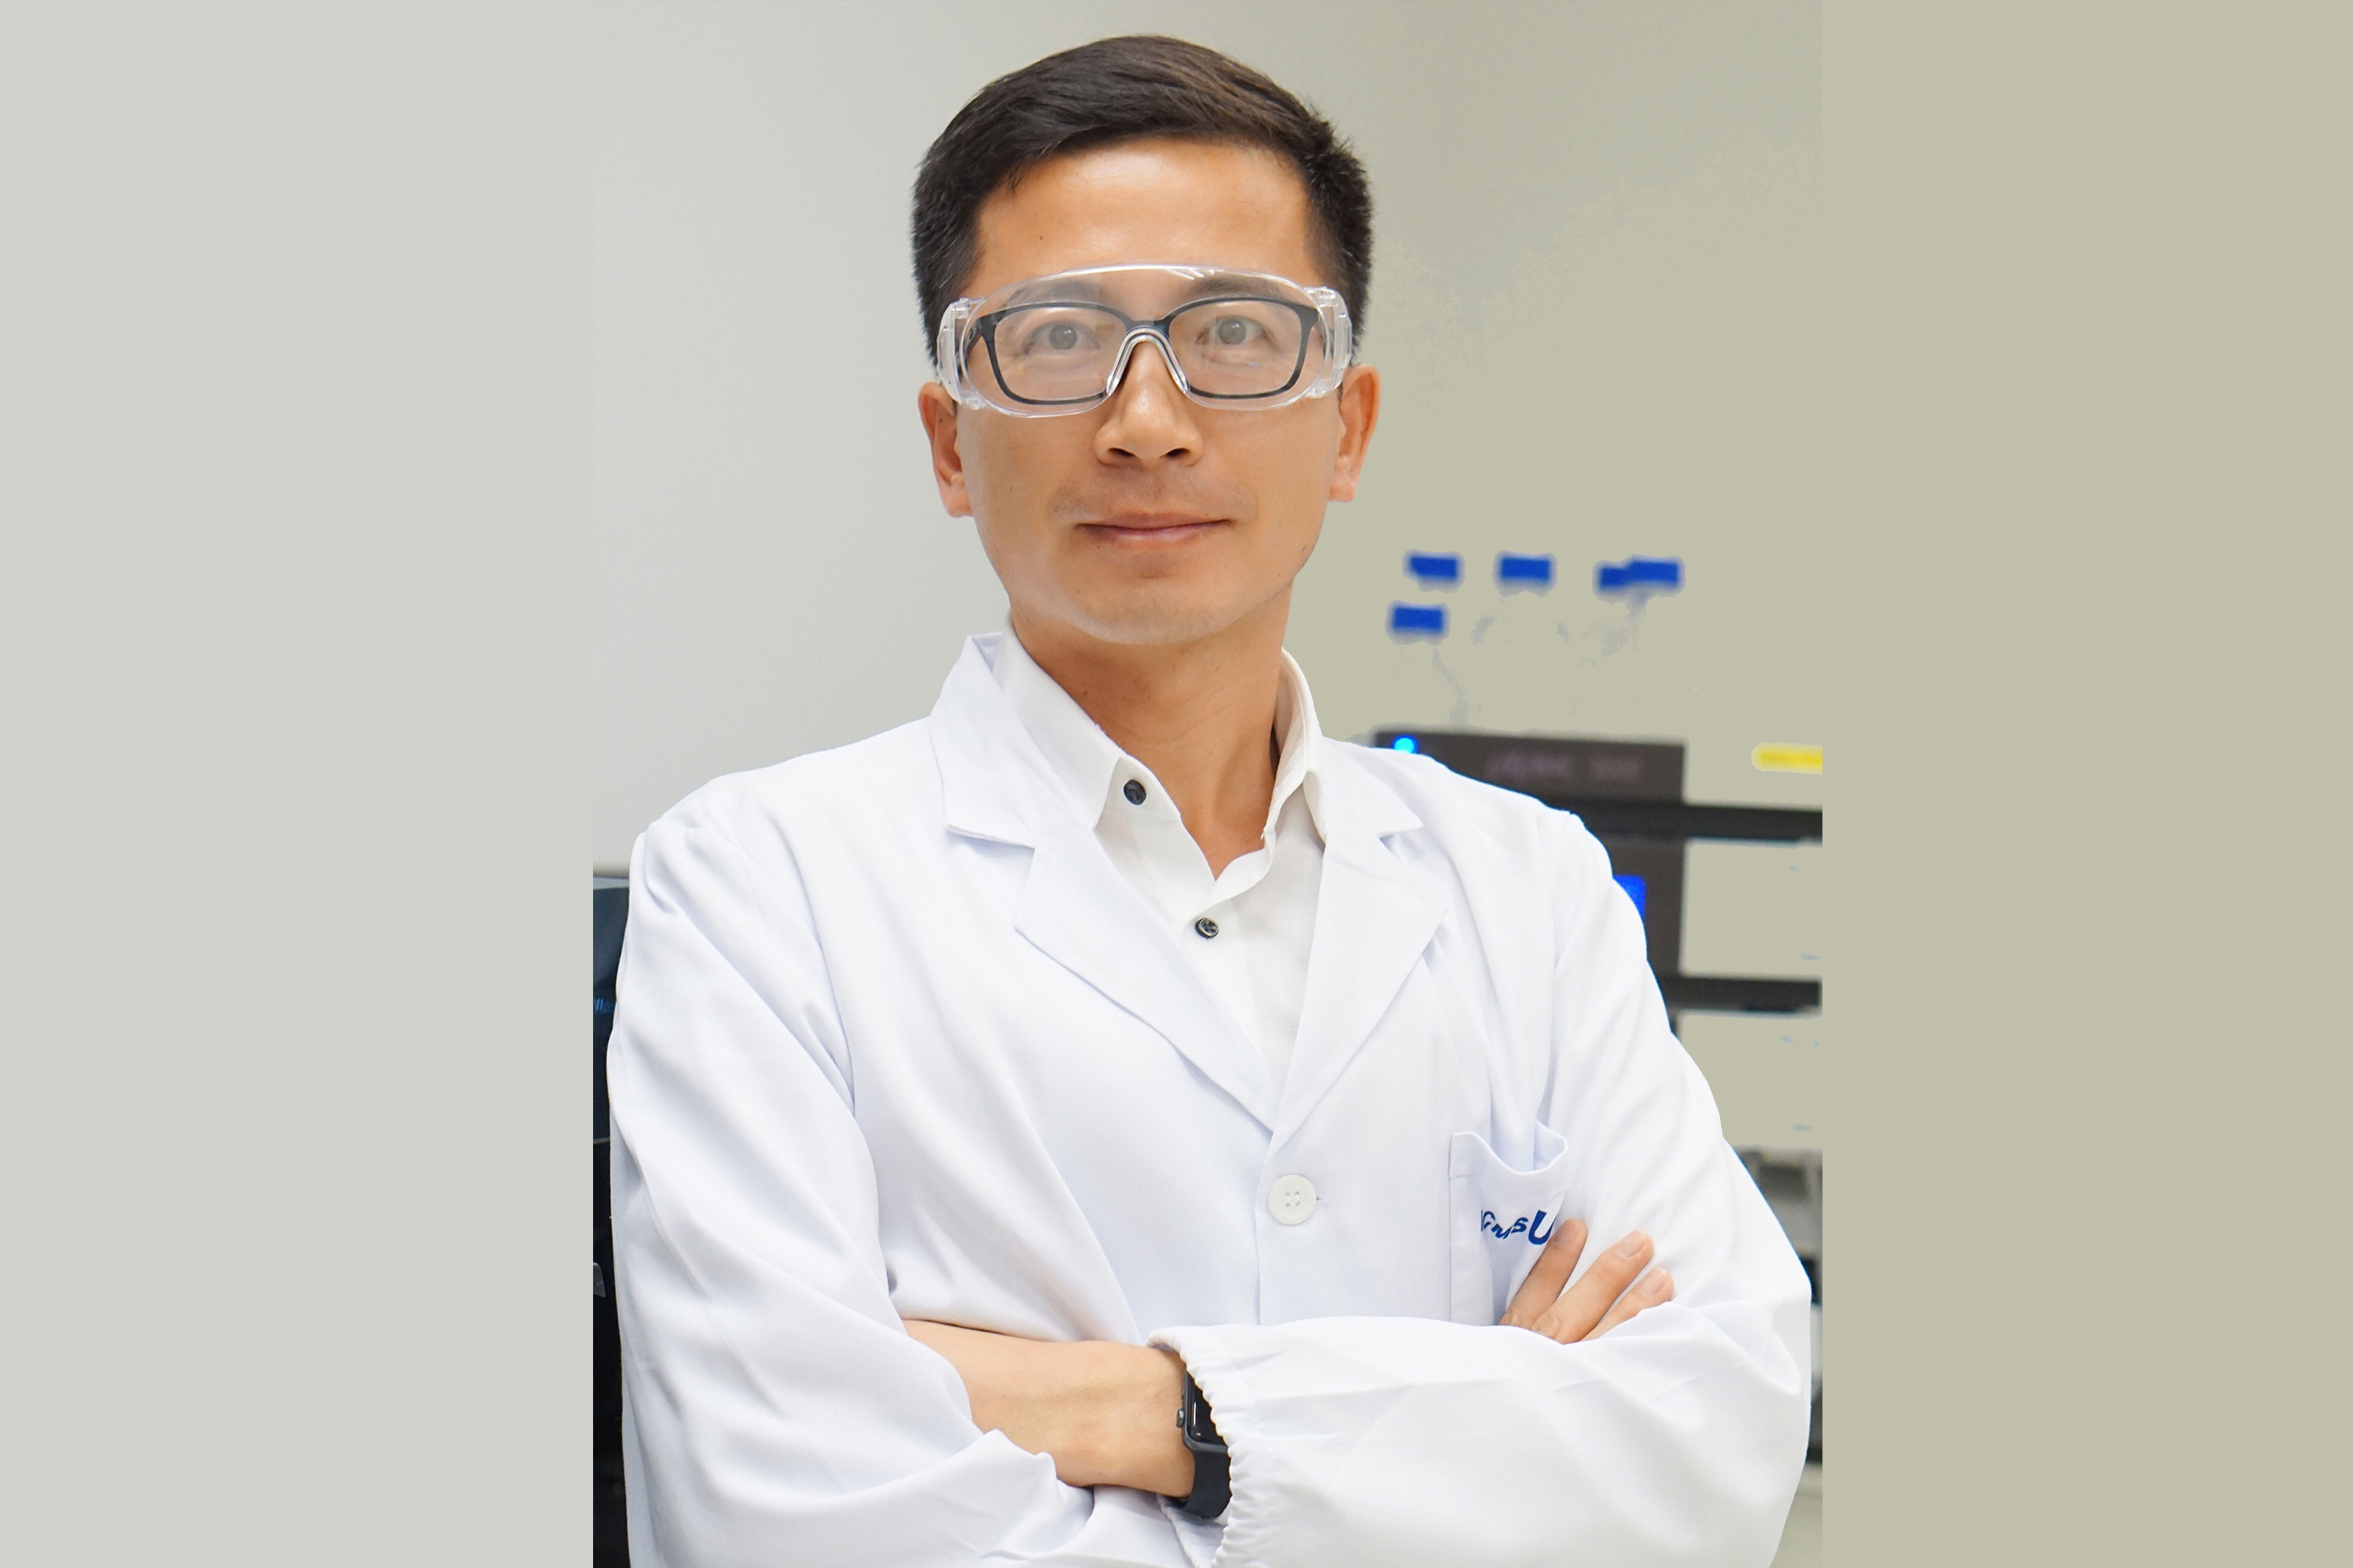 UM Teaching Excellence Award recipient Wang Ruibing will give a talk titled 'Connecting Classrooms to the Reality' next Monday